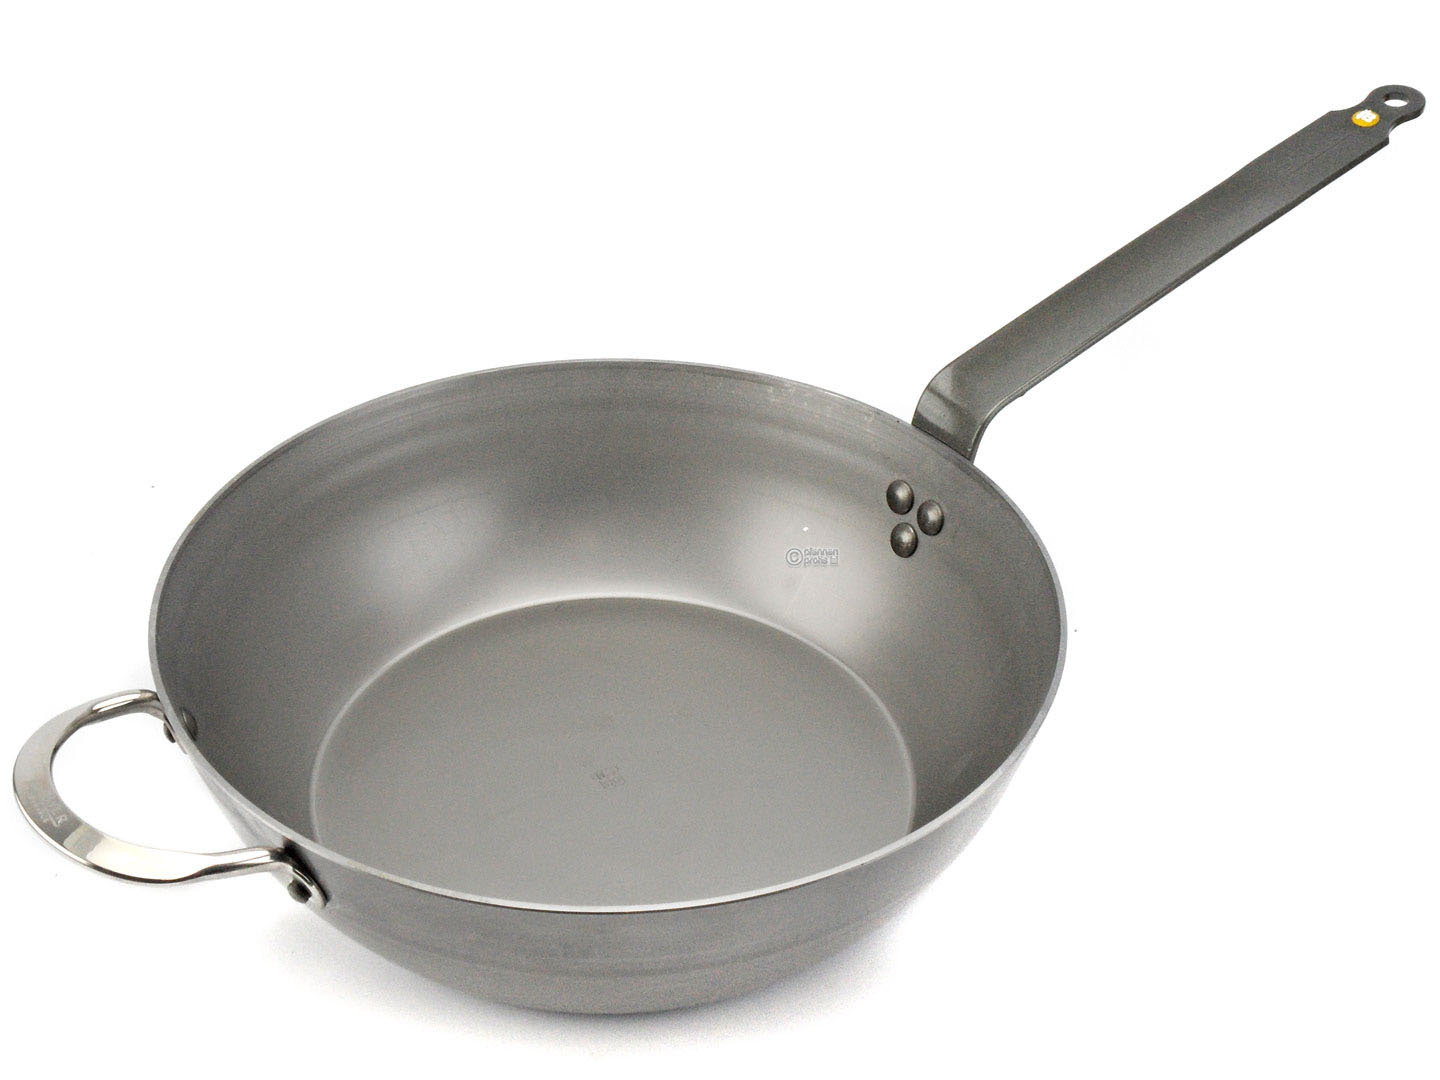 DE BUYER iron country pan MINERAL B ELEMENT 32 cm deep skillet